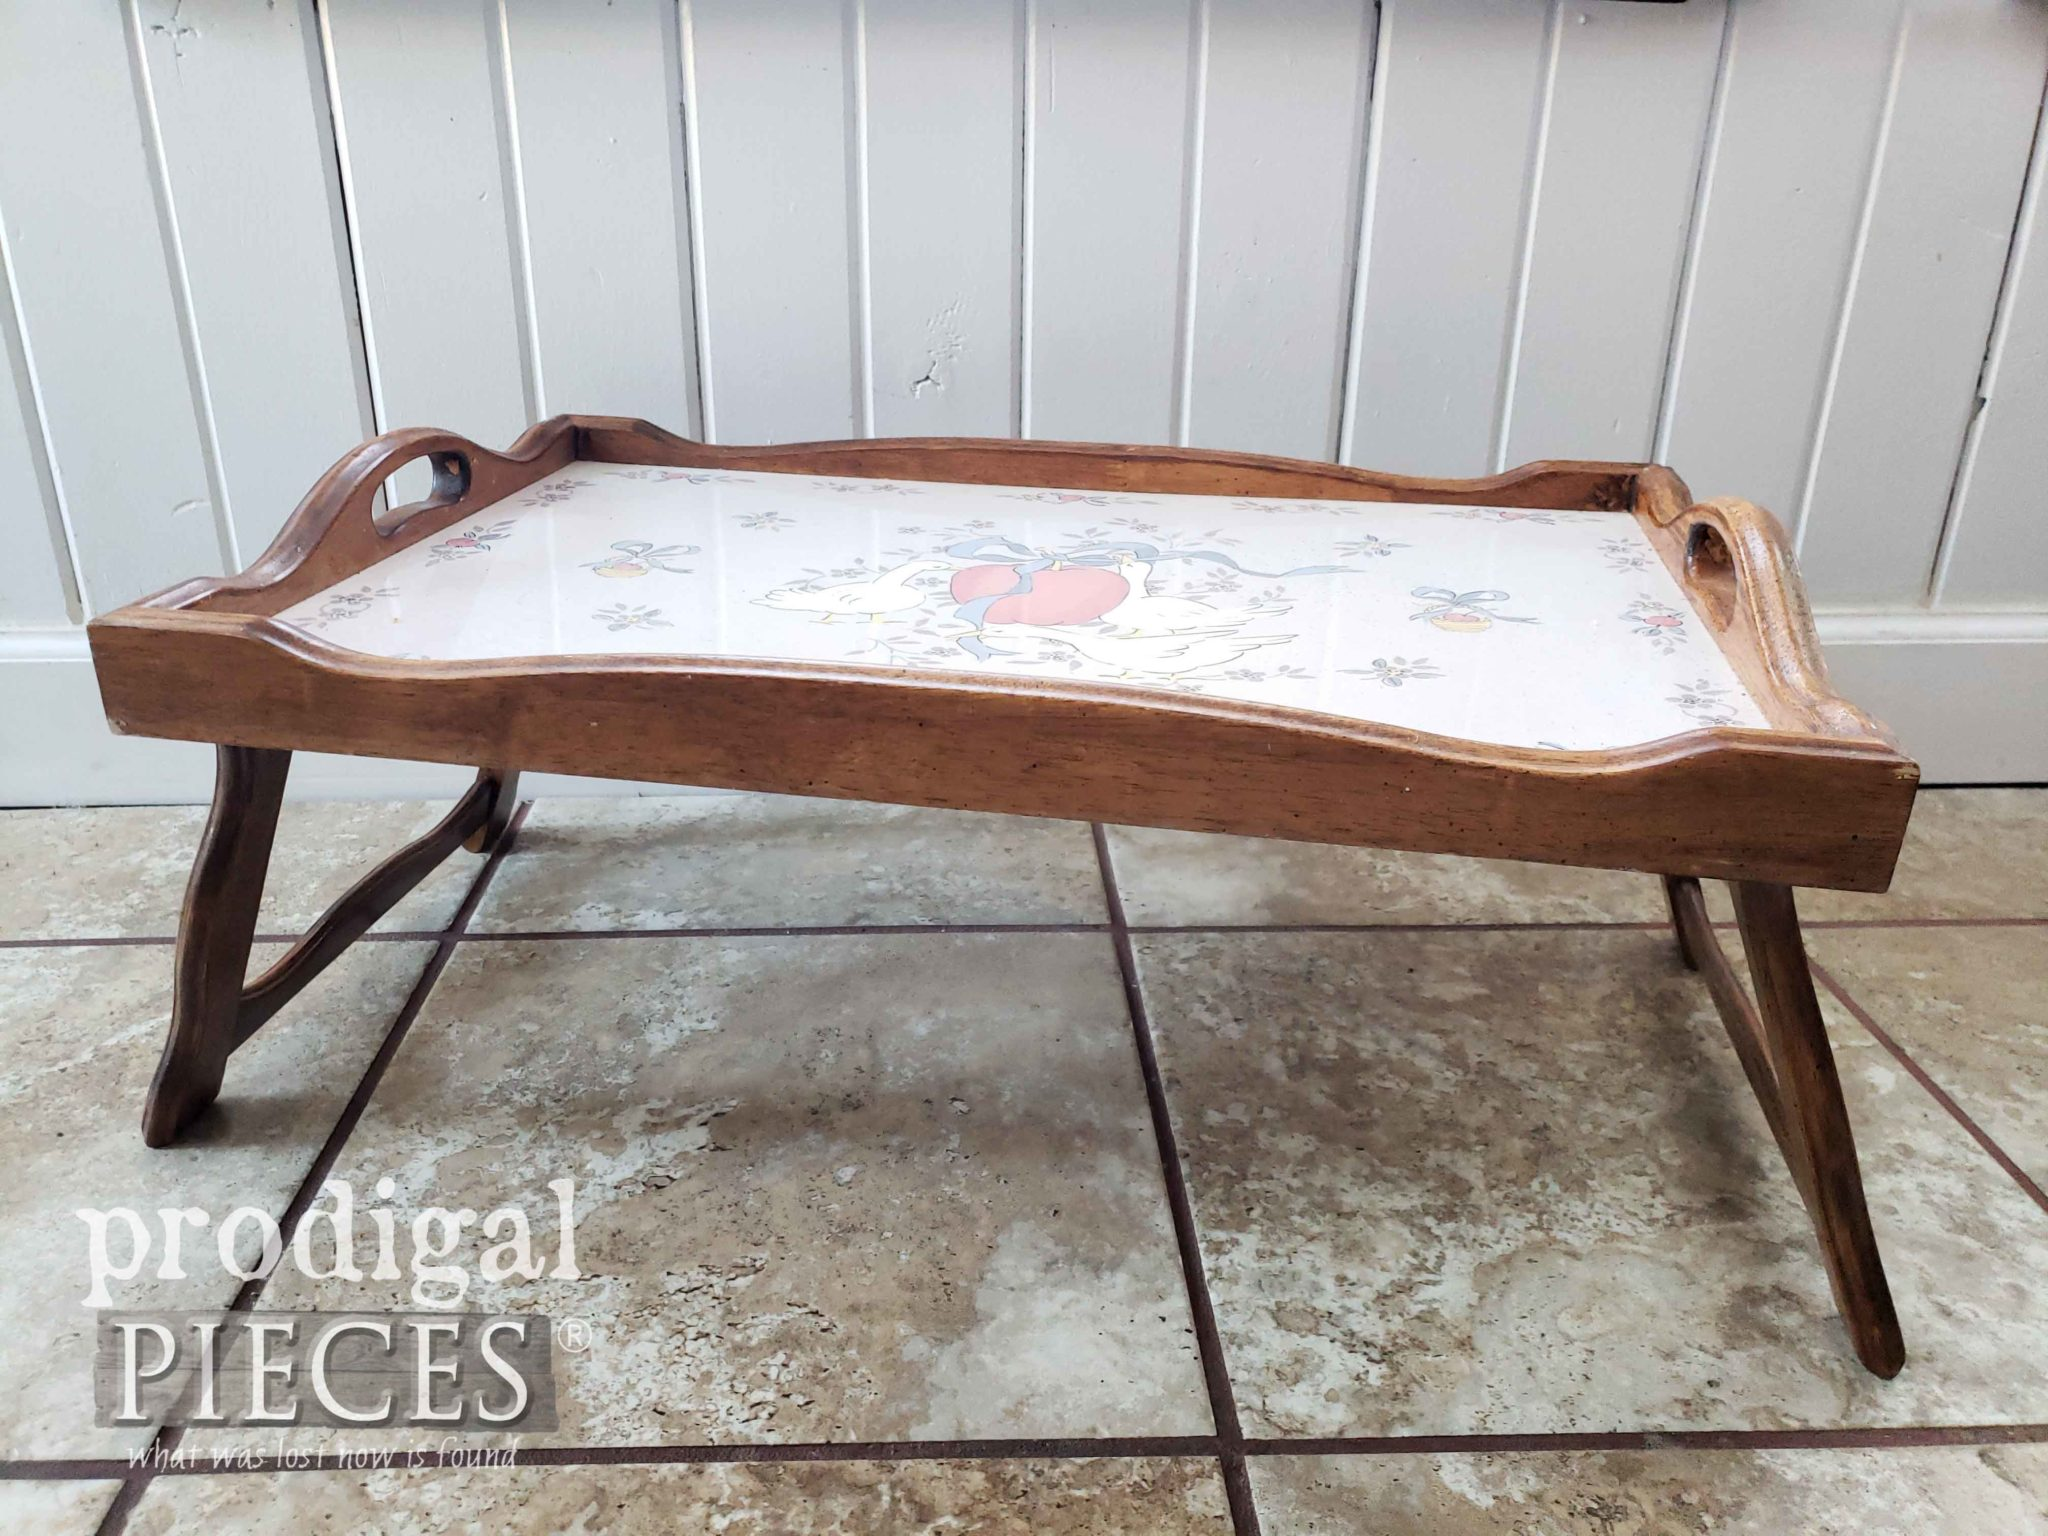 Vintage Bed Tray Before Makeover by Prodigal Pieces | prodigalpieces.com